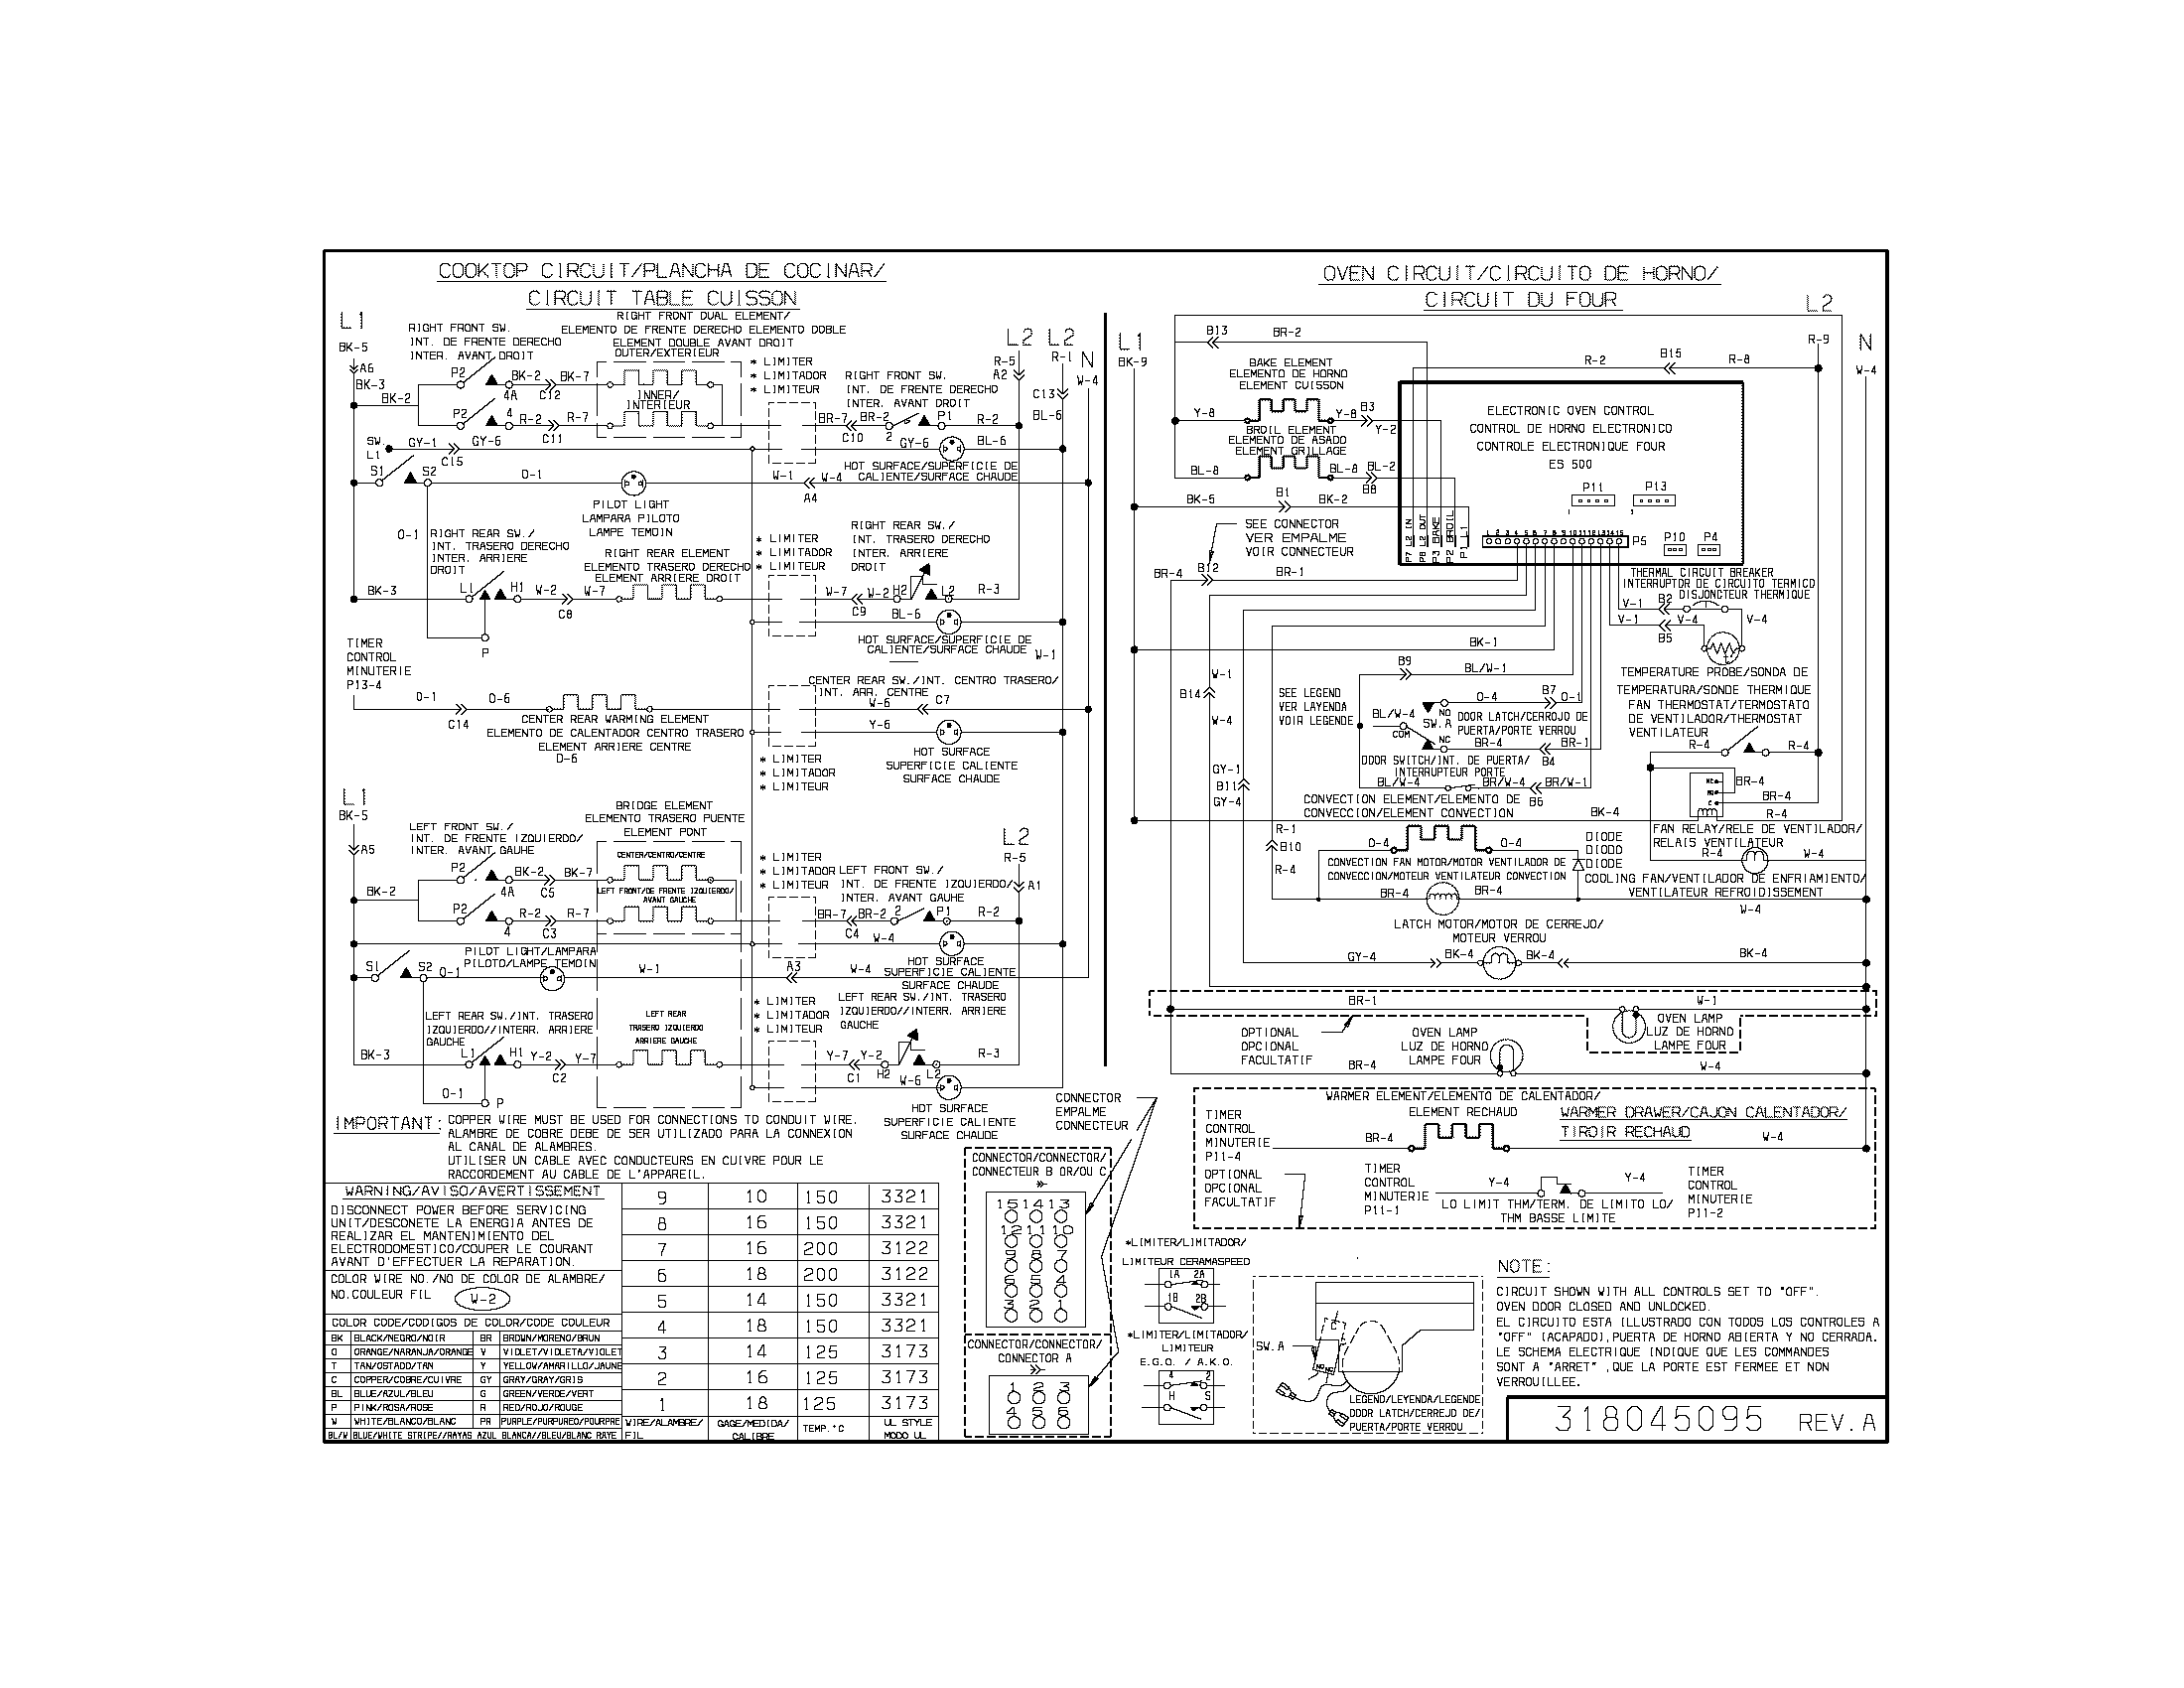 Induction Cooktop Wiring Diagram 32 Images Electric Rice Cooker Circuit Electricalequipmentcircuit Parts Frigidaire Cpes389cc2 Range Timer Stove Clocks And Appliance Timers